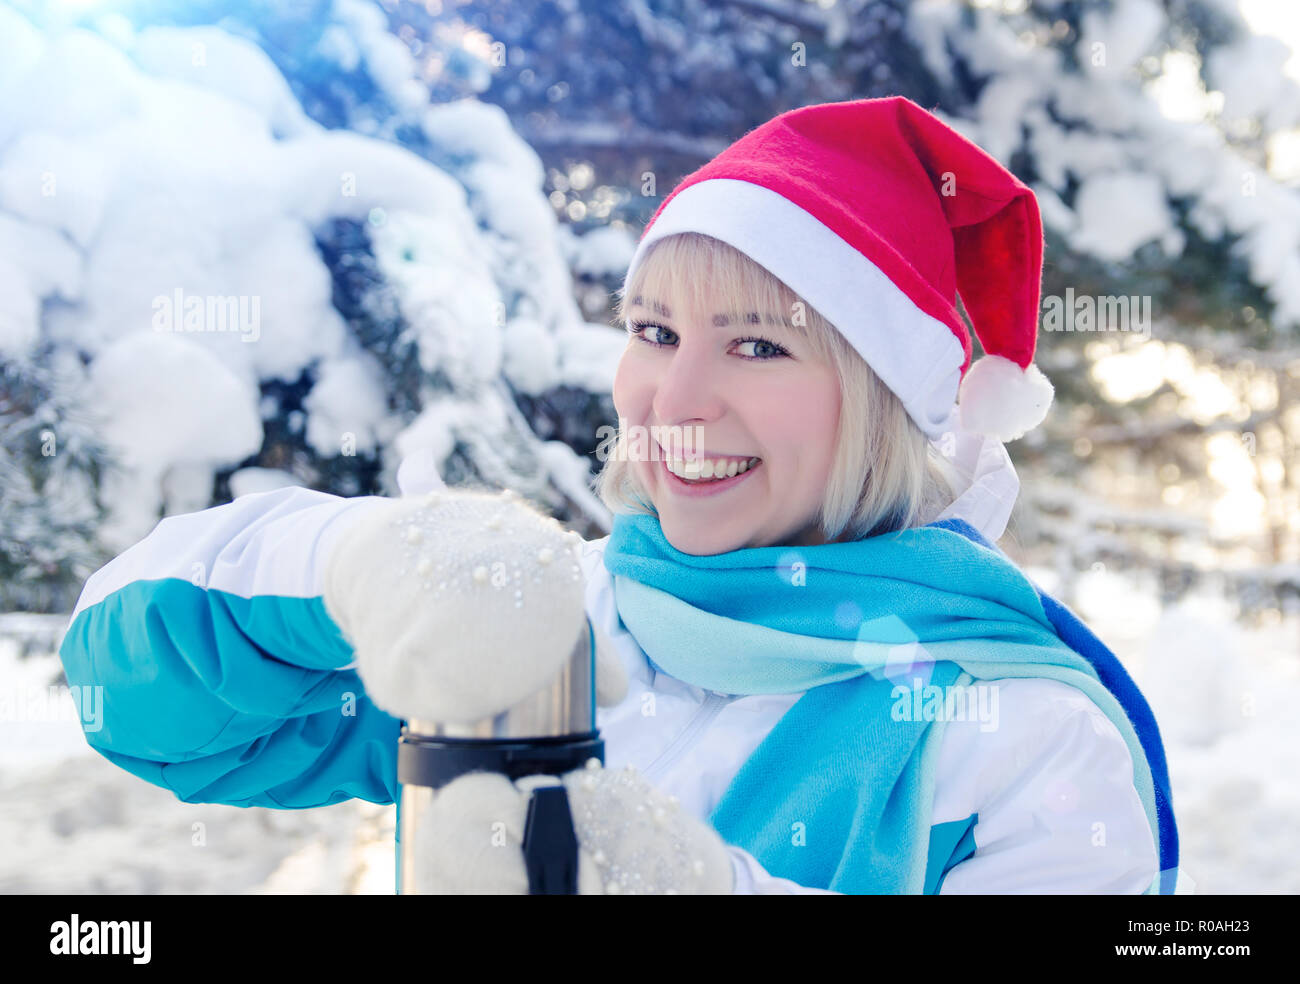 Beautiful Smiling Blonde Girl In A Red Christmas Hat Opens A Thermos With Hot Tea